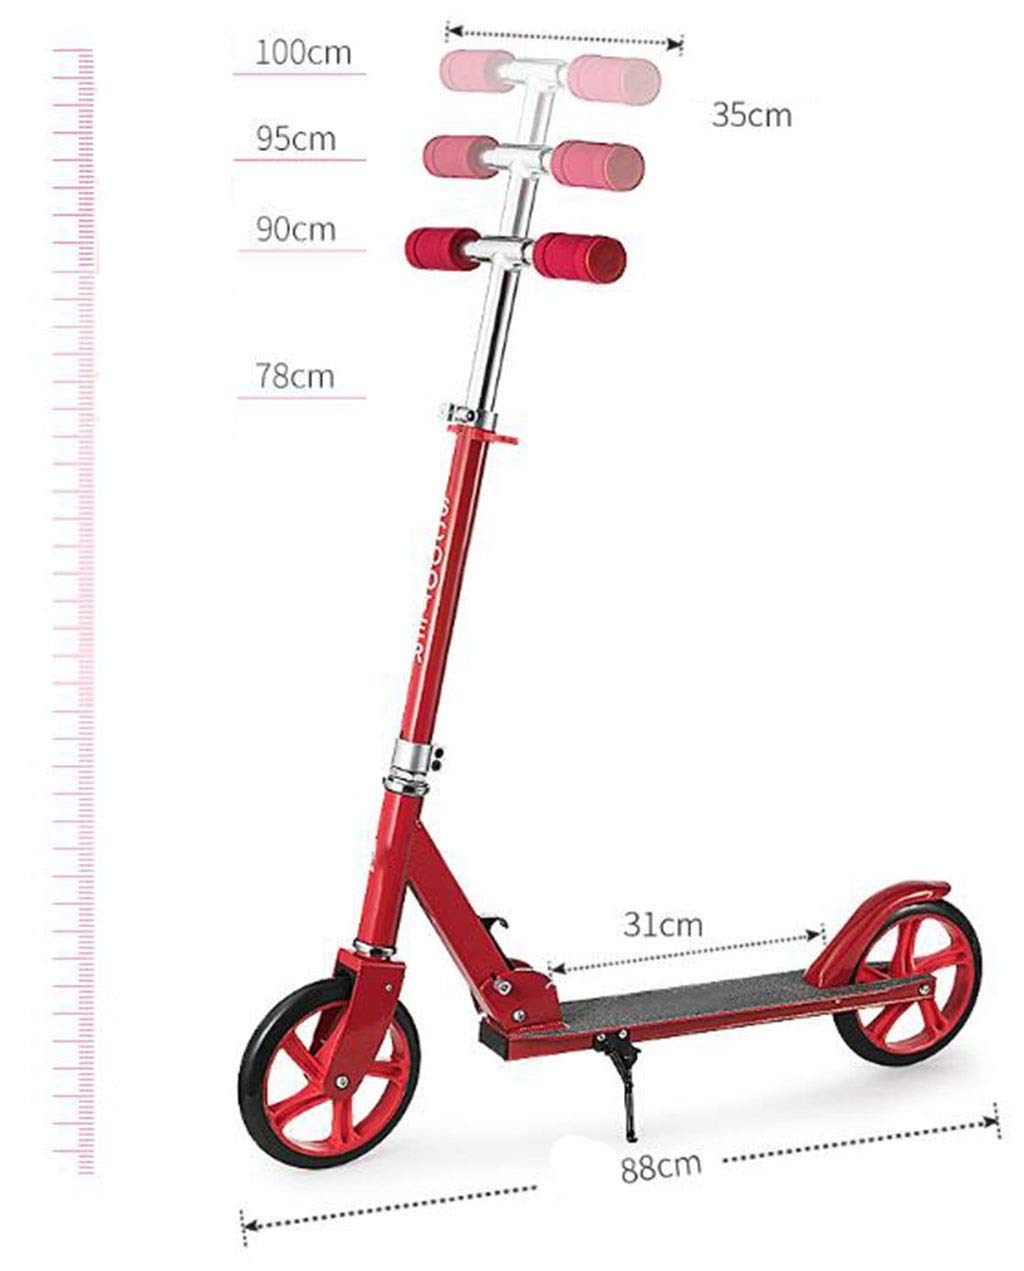 JBHURF Children's Scooter, Student Pedal Scooter, Two-Wheeled Children's Scooter with one-Second Folding Function, Adjustable Height Scooter for Children Over 8 Years Old (Color : Pink) by JBHURF (Image #2)